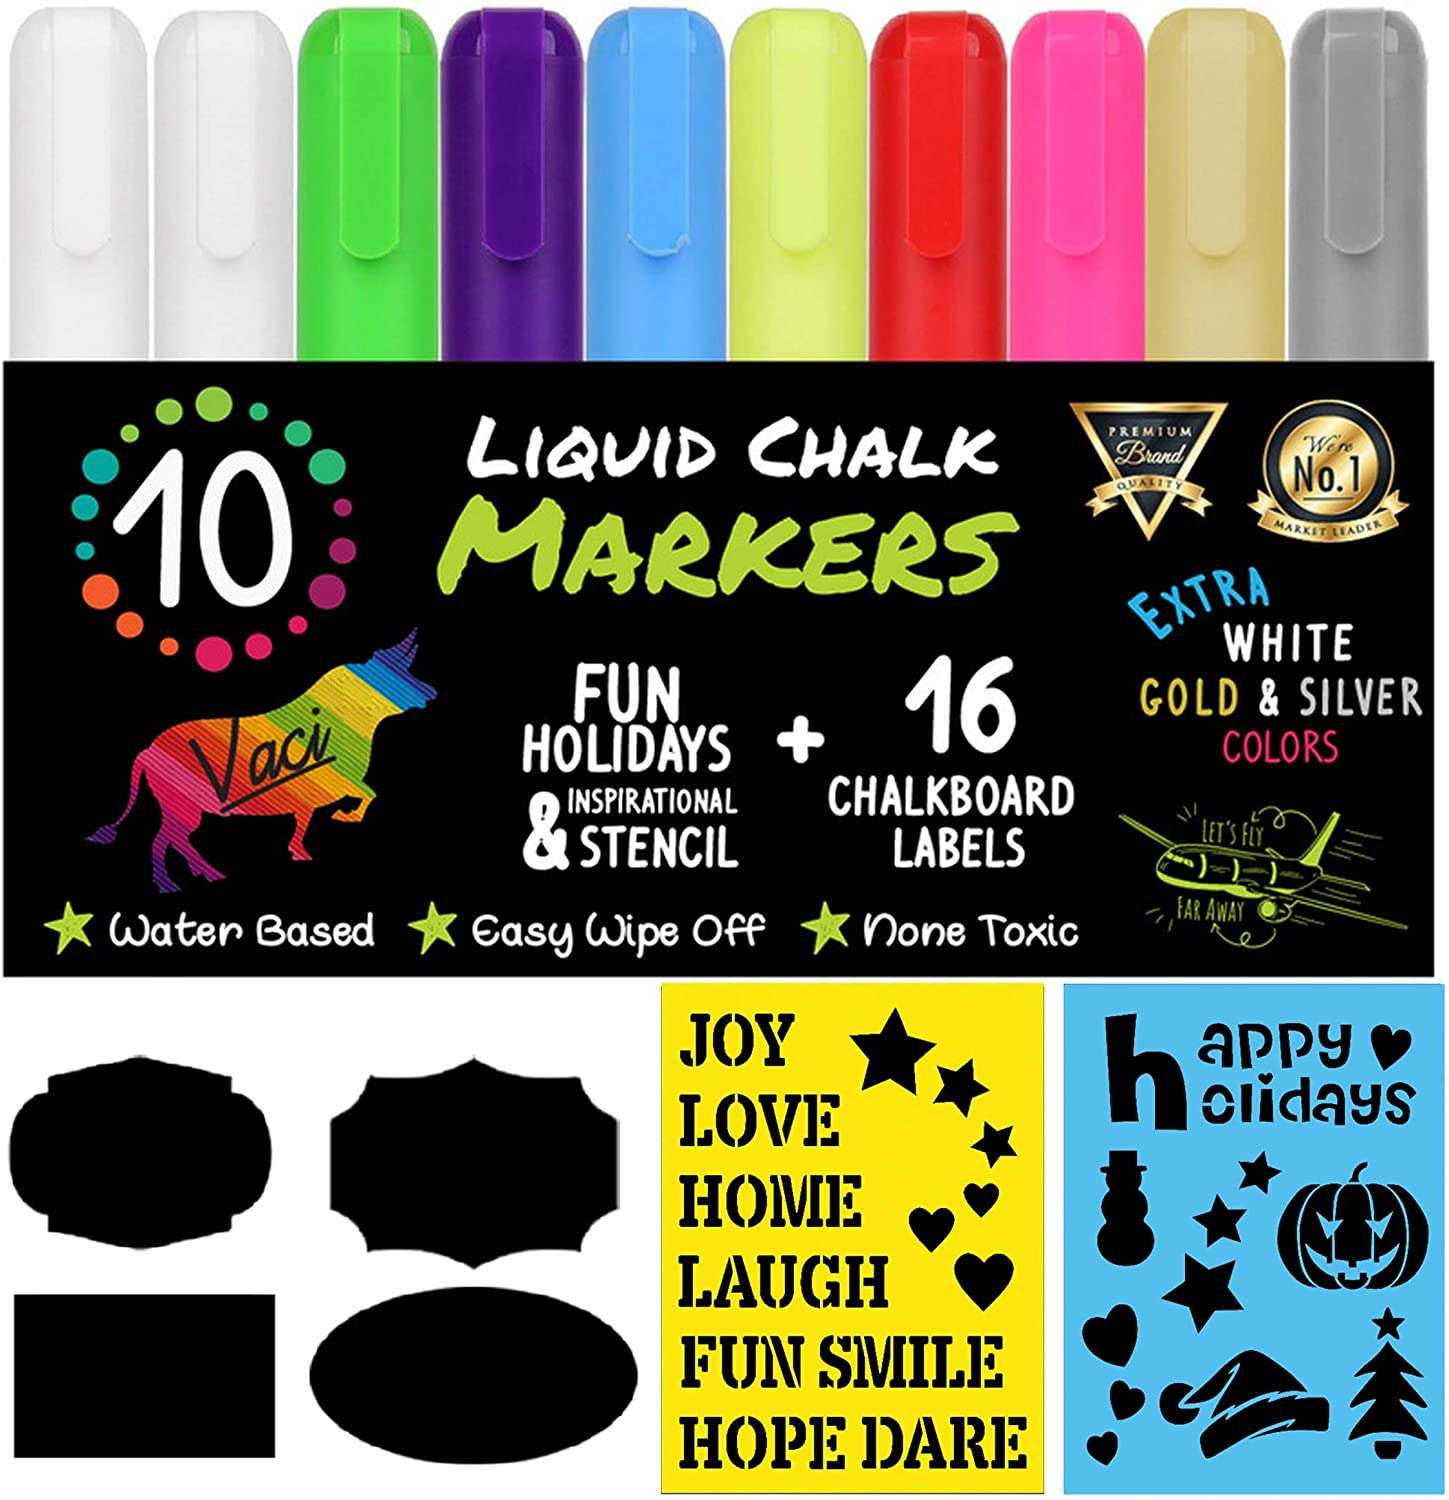 Chalk Markers by Vaci, Pack of 10 + Drawing Stencils + 16 Labels, Premium Liquid Chalkboard Neon Pens, Including Gold, Silver and Extra White Ink, Bullet or Chisel Reversible Tips : Office Products